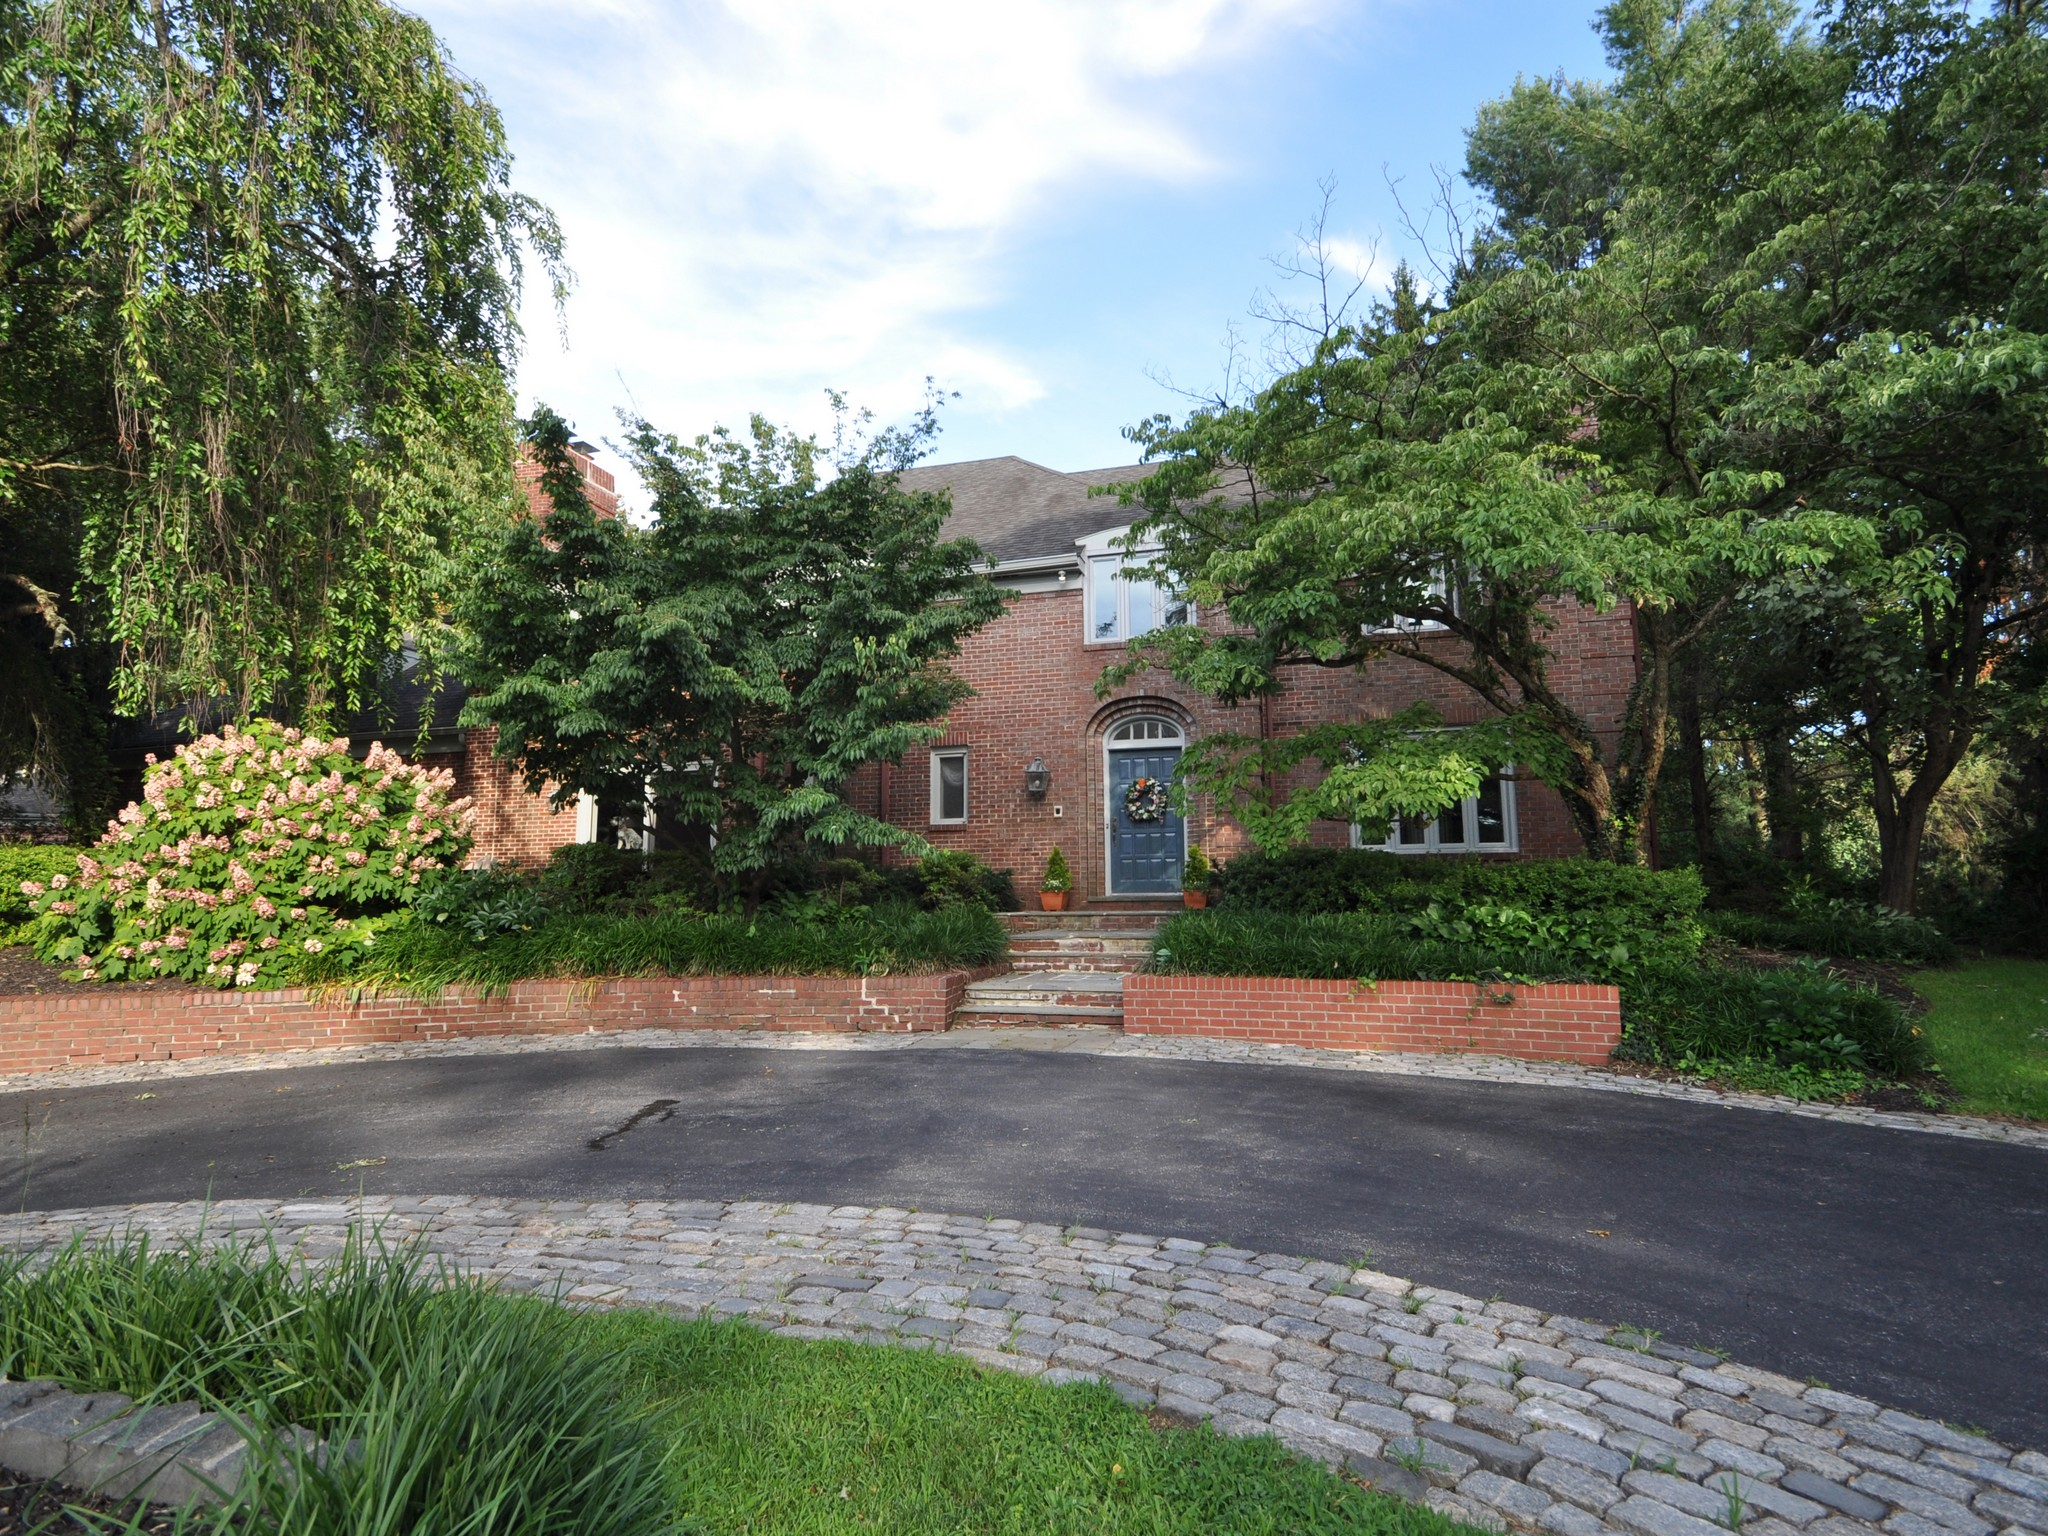 Single Family Home for Sale at Owls Nest Rd 402 Owls Nest Road Wilmington, Delaware 19807 United States